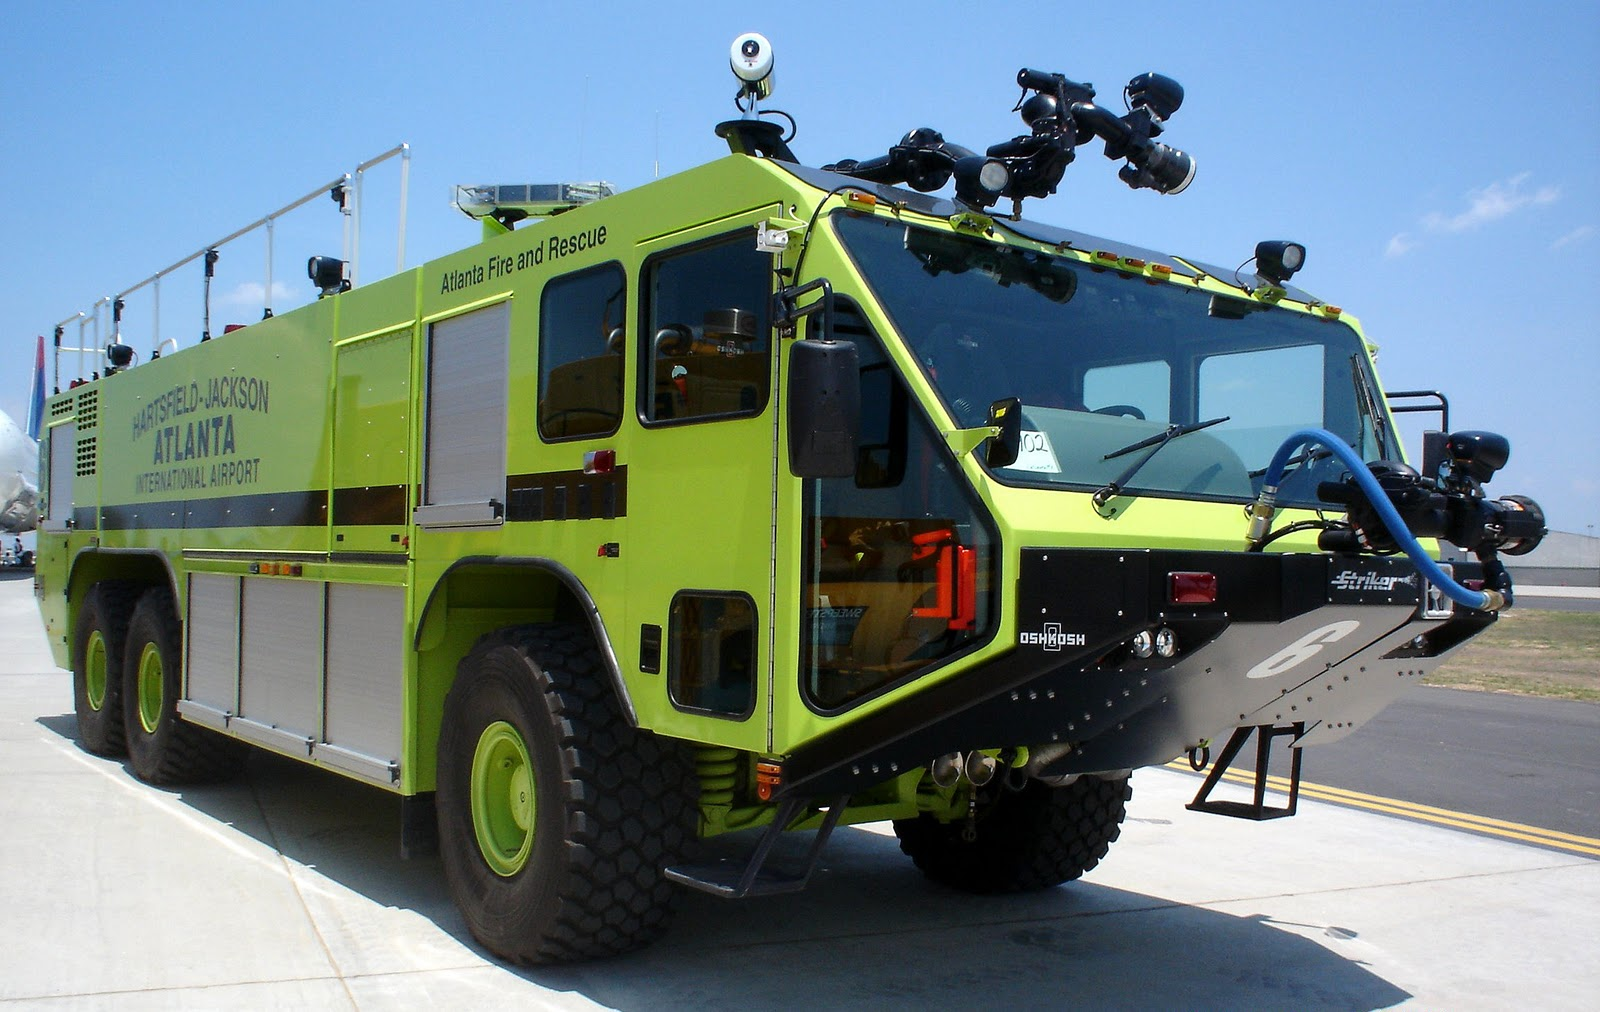 Oshkosh striker